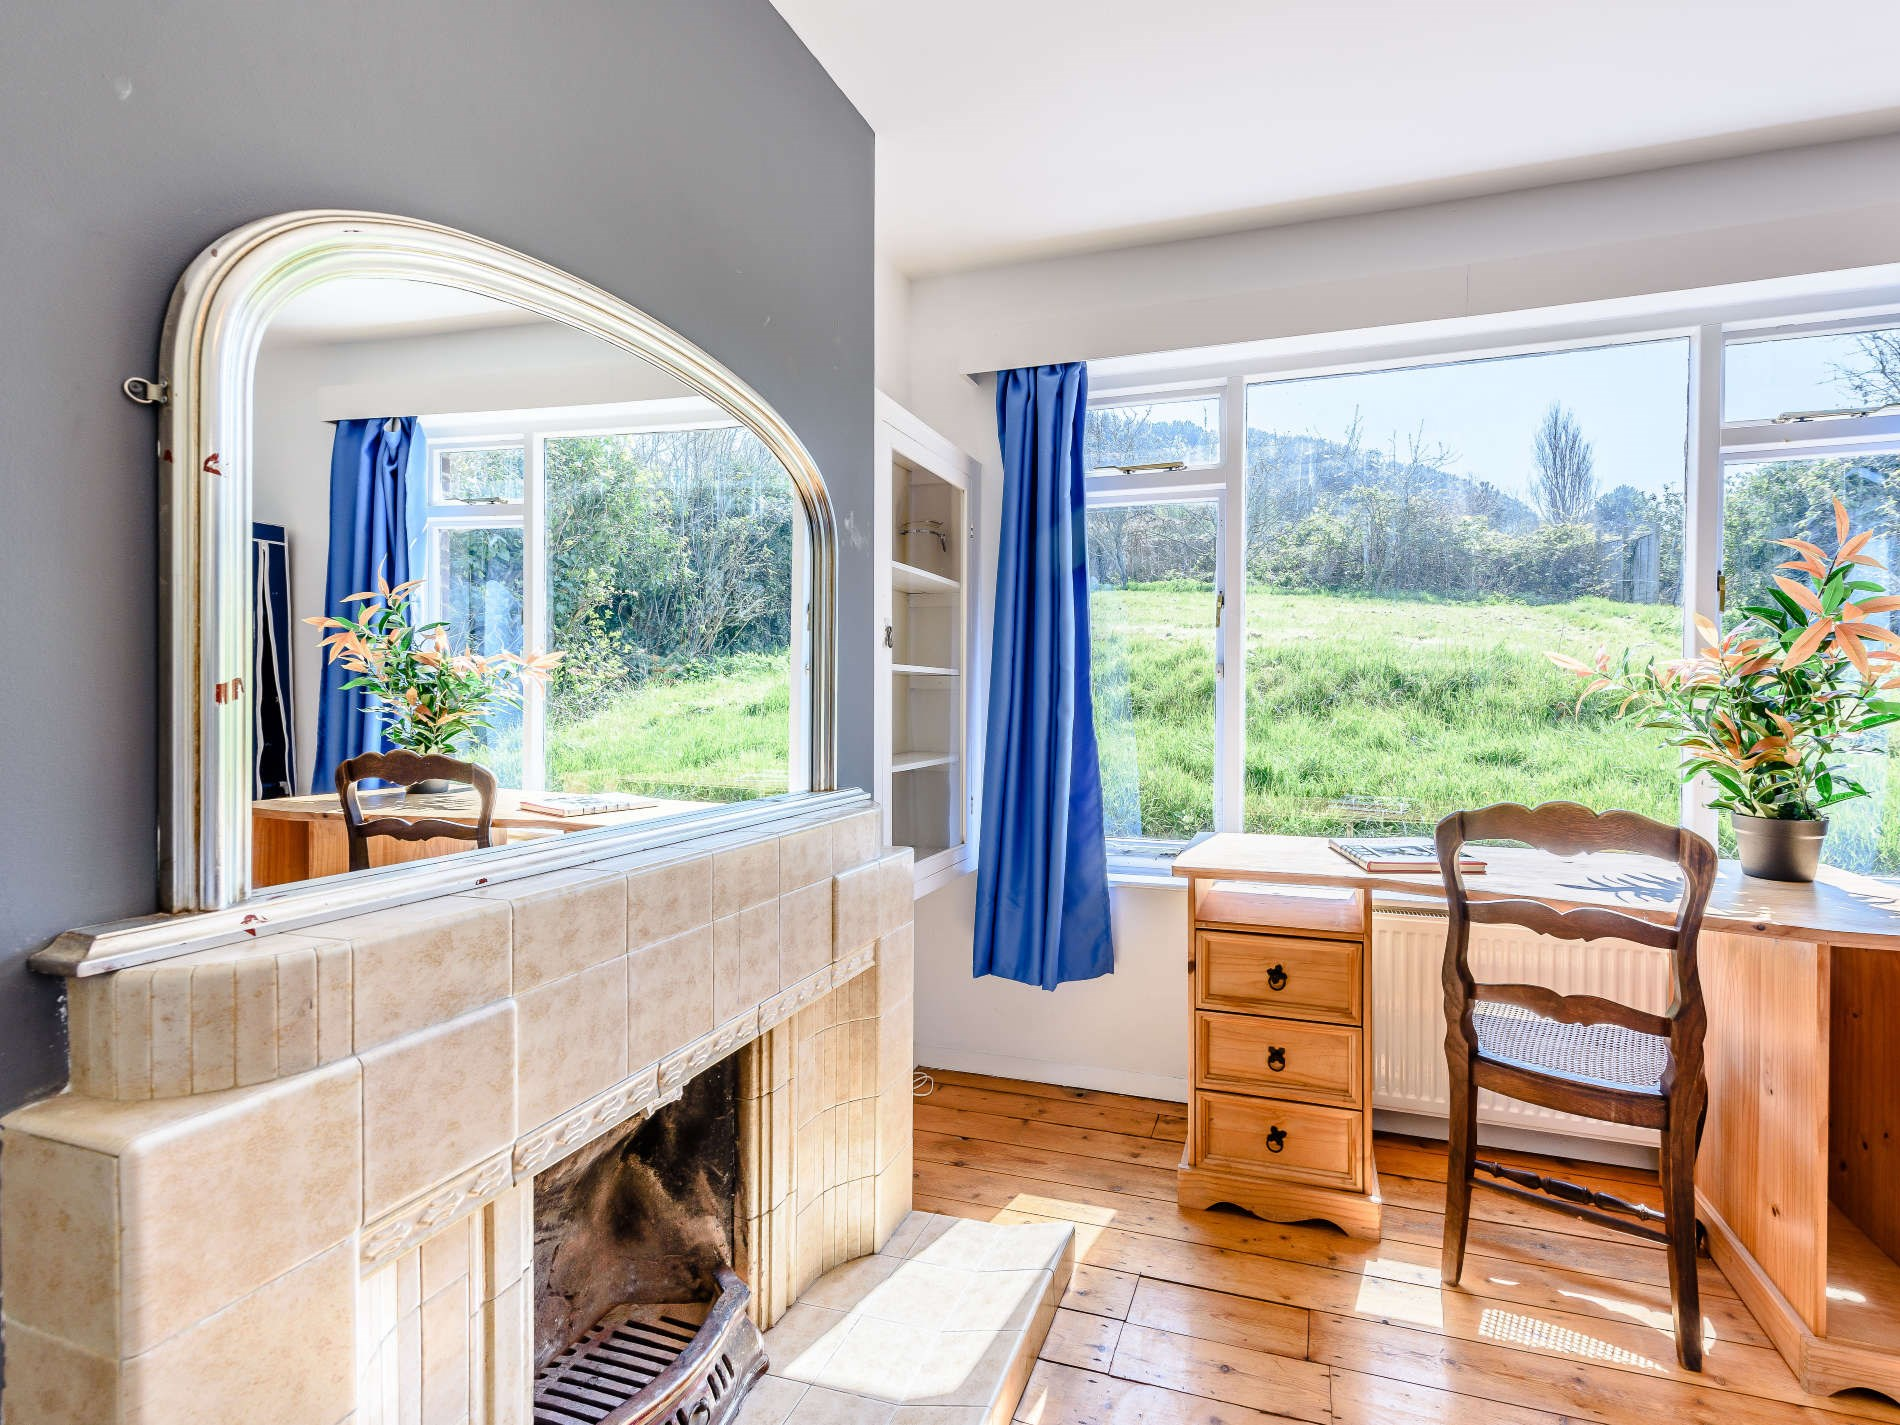 6 Bedroom House in Sussex, South of England